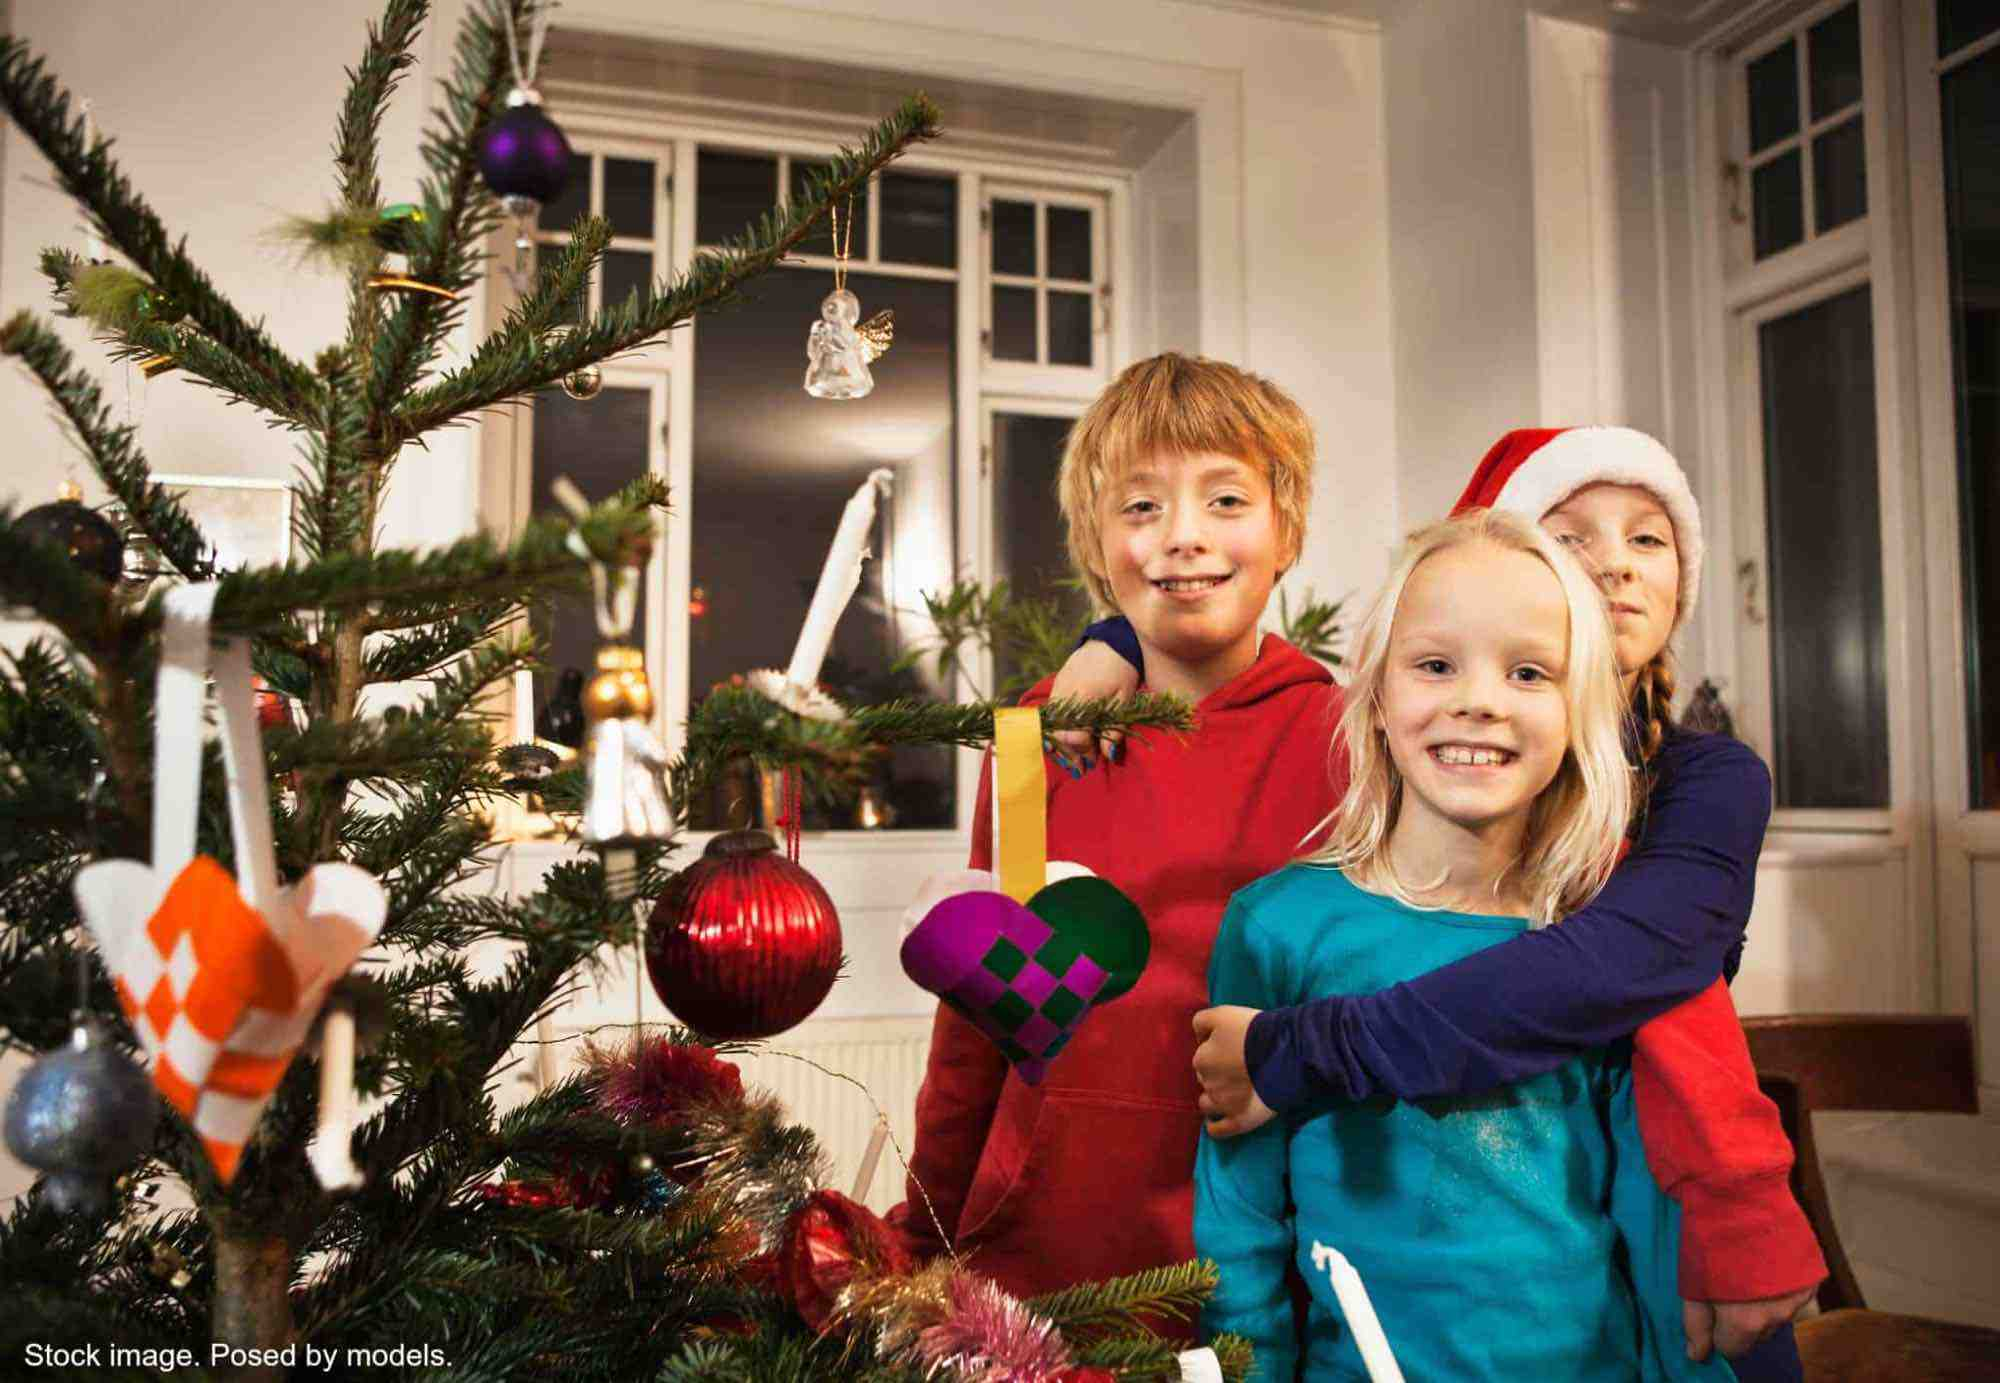 3 smiling kids hugging near the Christmas tree. Stock photo. Posed by models.